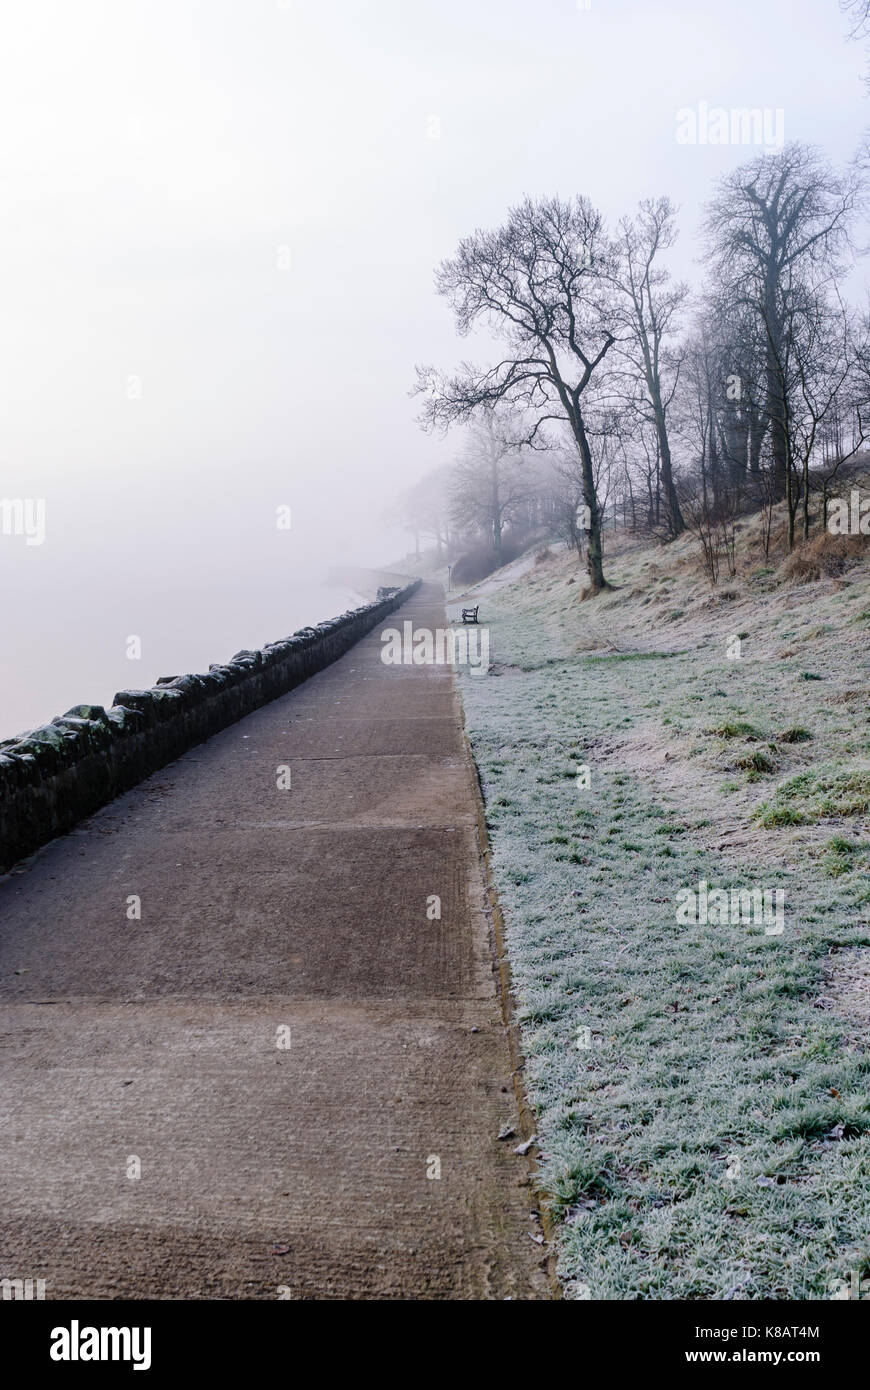 Frosty, foggy coastal path. - Stock Image